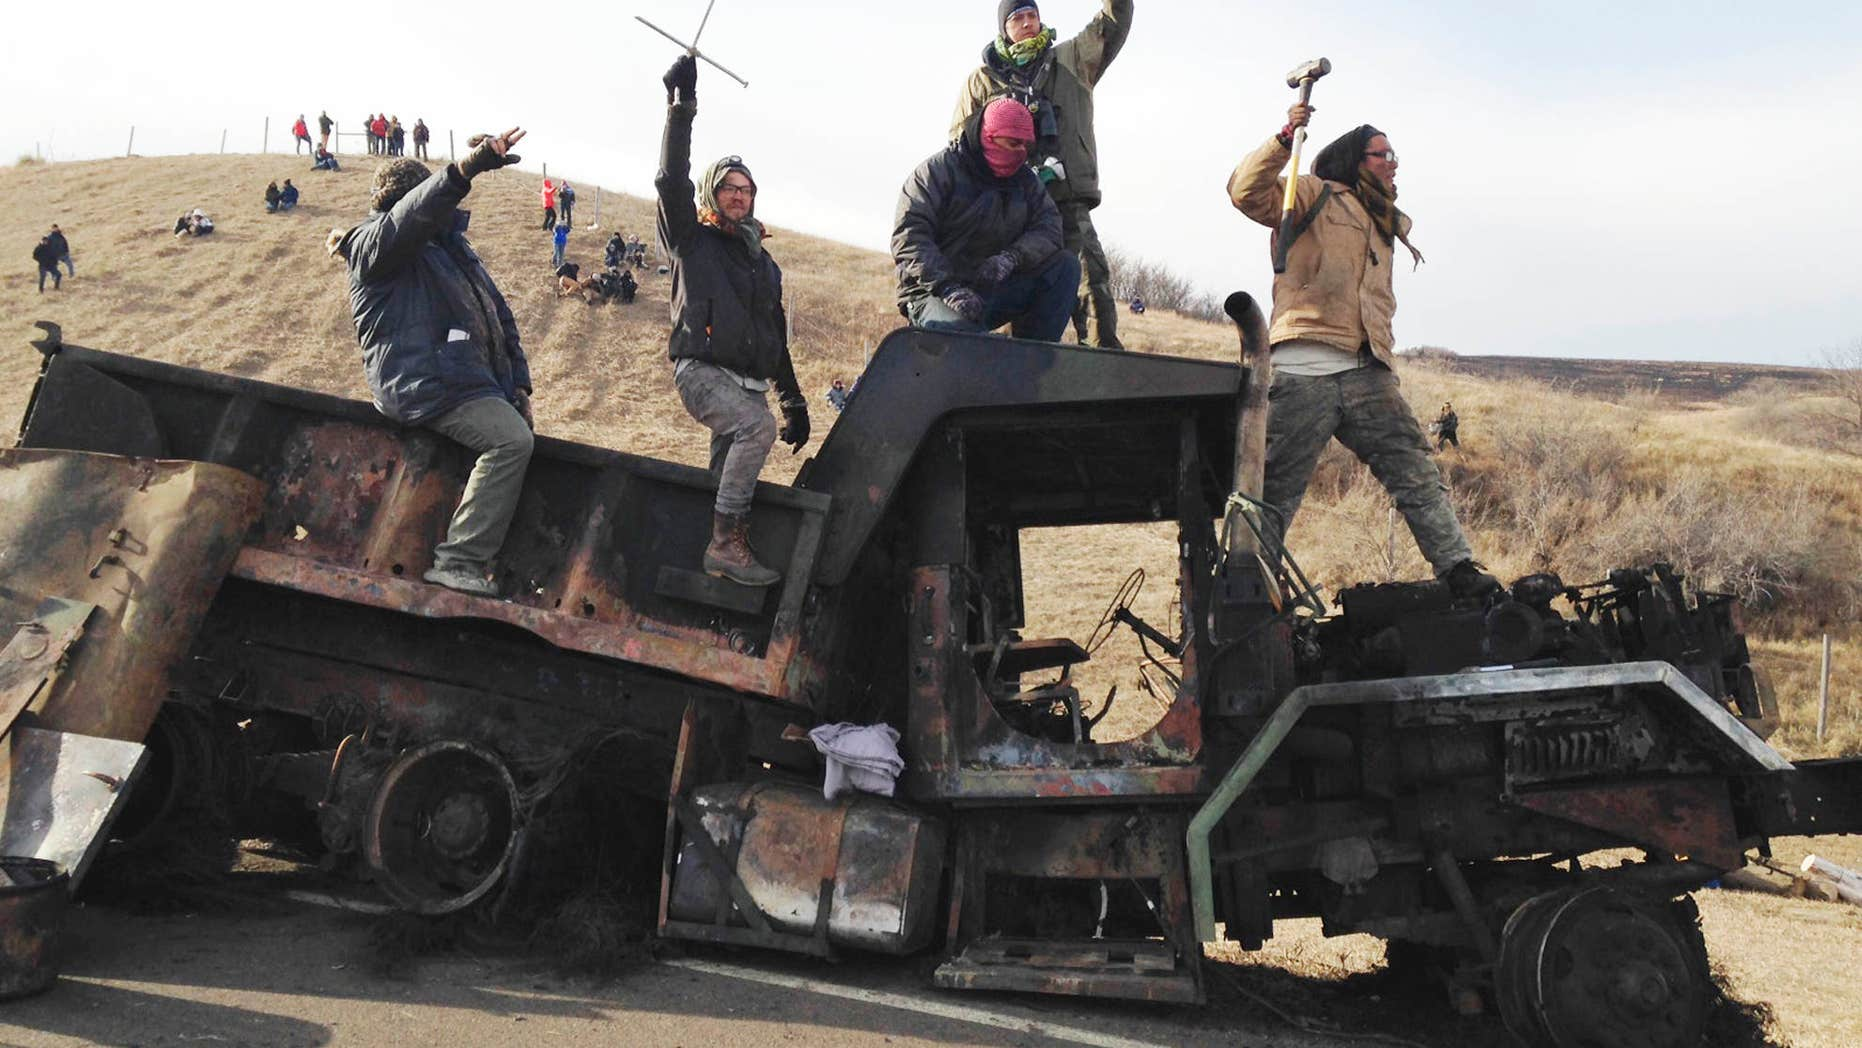 FILE - In this Monday, Nov. 21, 2016, file photo, protesters against the Dakota Access oil pipeline stand on a burned-out truck near Cannon Ball, N.D., that they removed from a long-closed bridge a day earlier on a state highway near their camp.